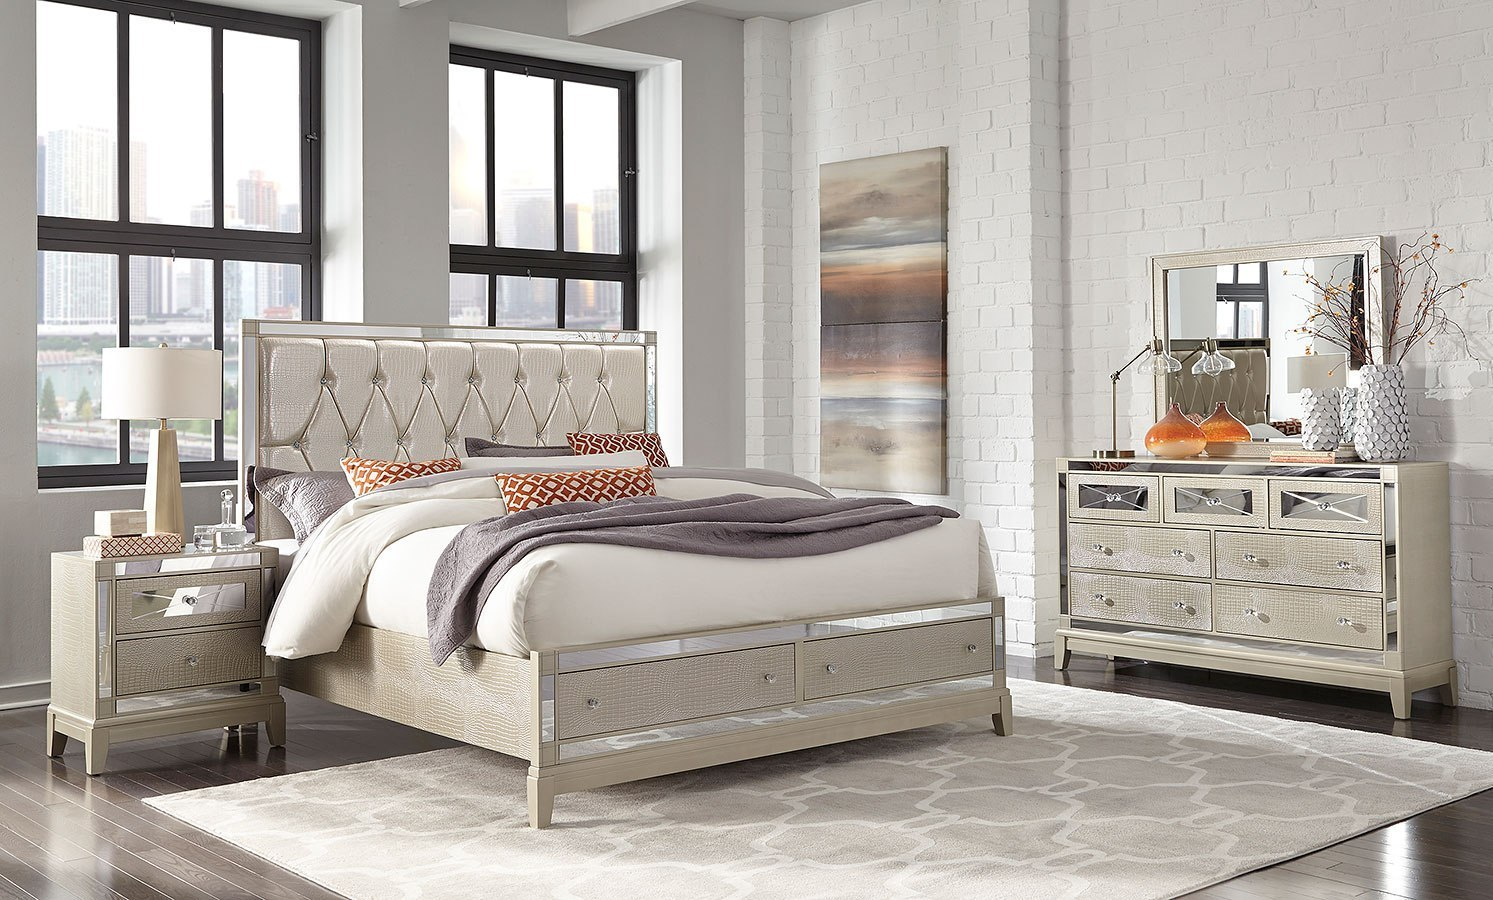 mirror storage bedroom set (champagne)global furniture